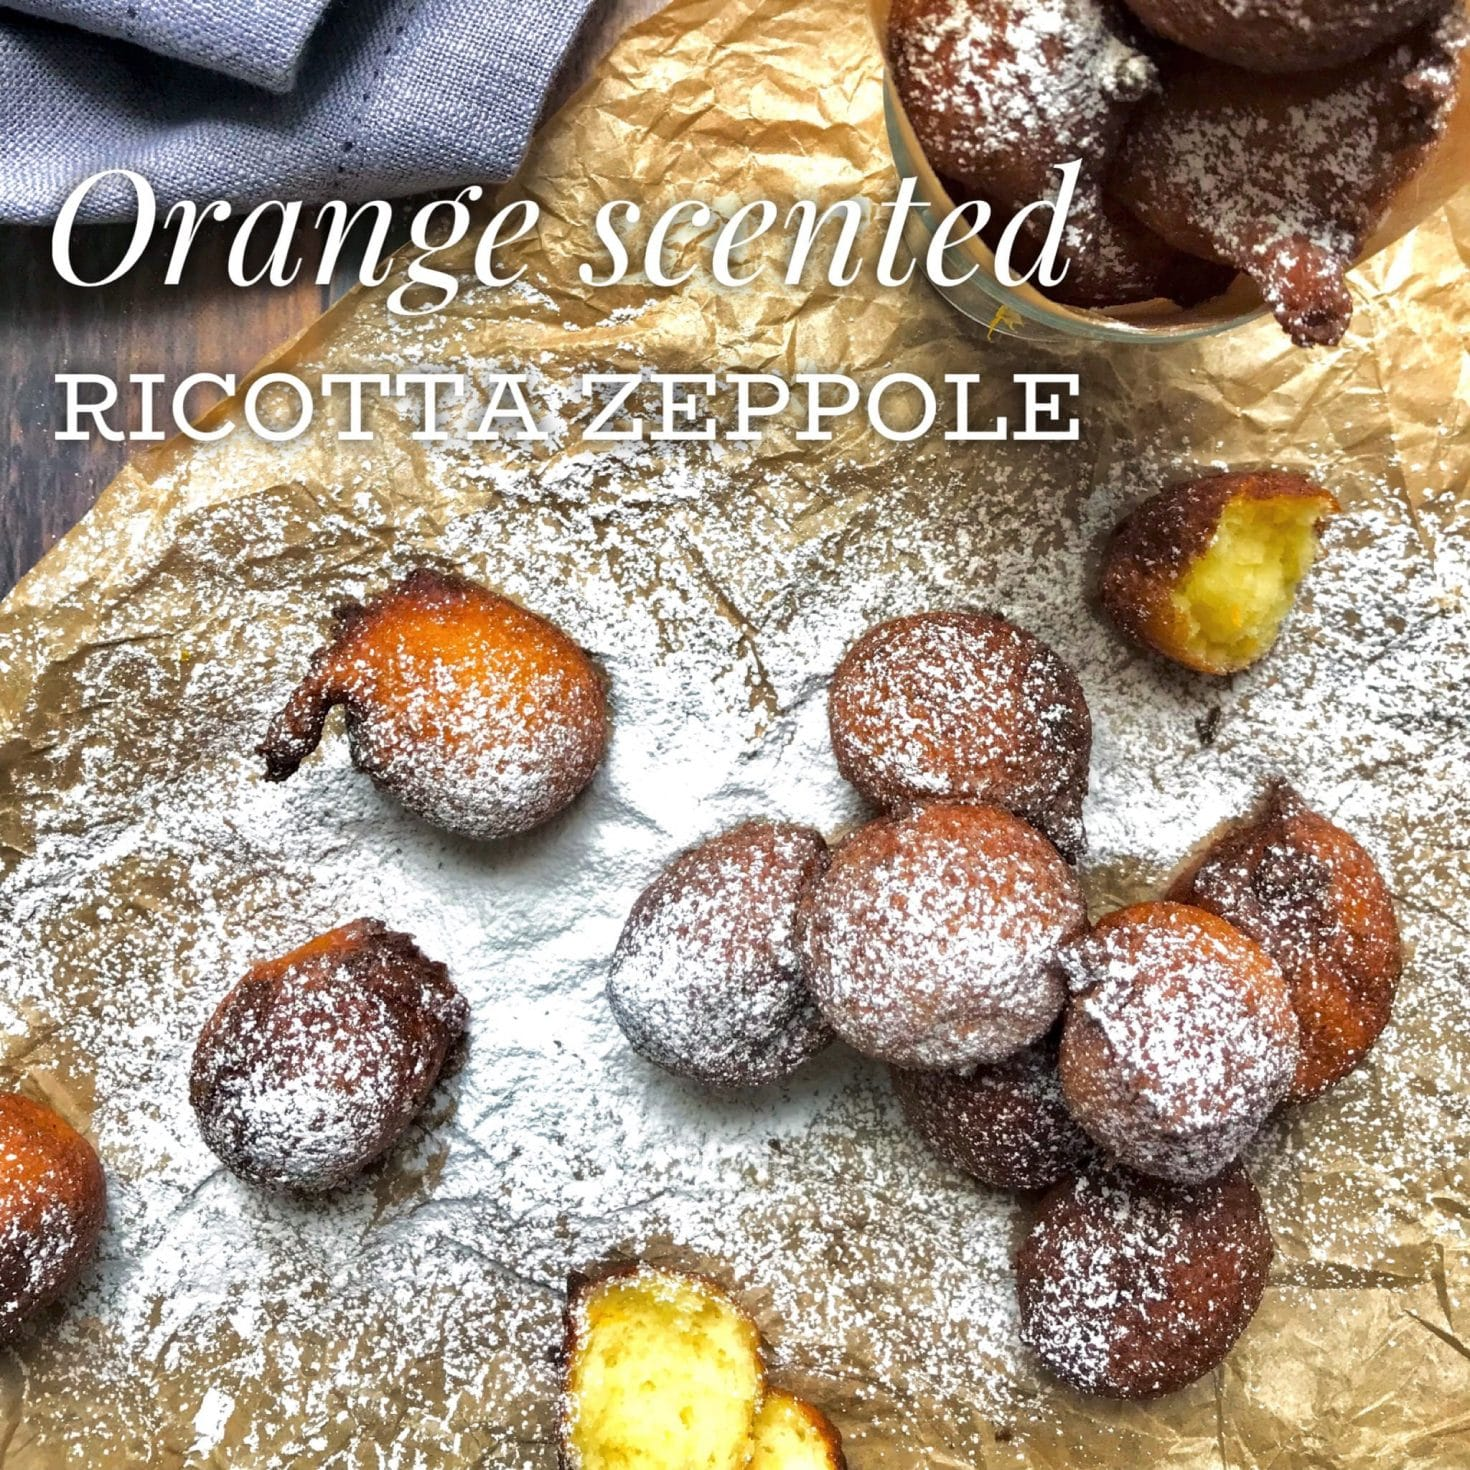 Orange Scented Ricotta Zeppole